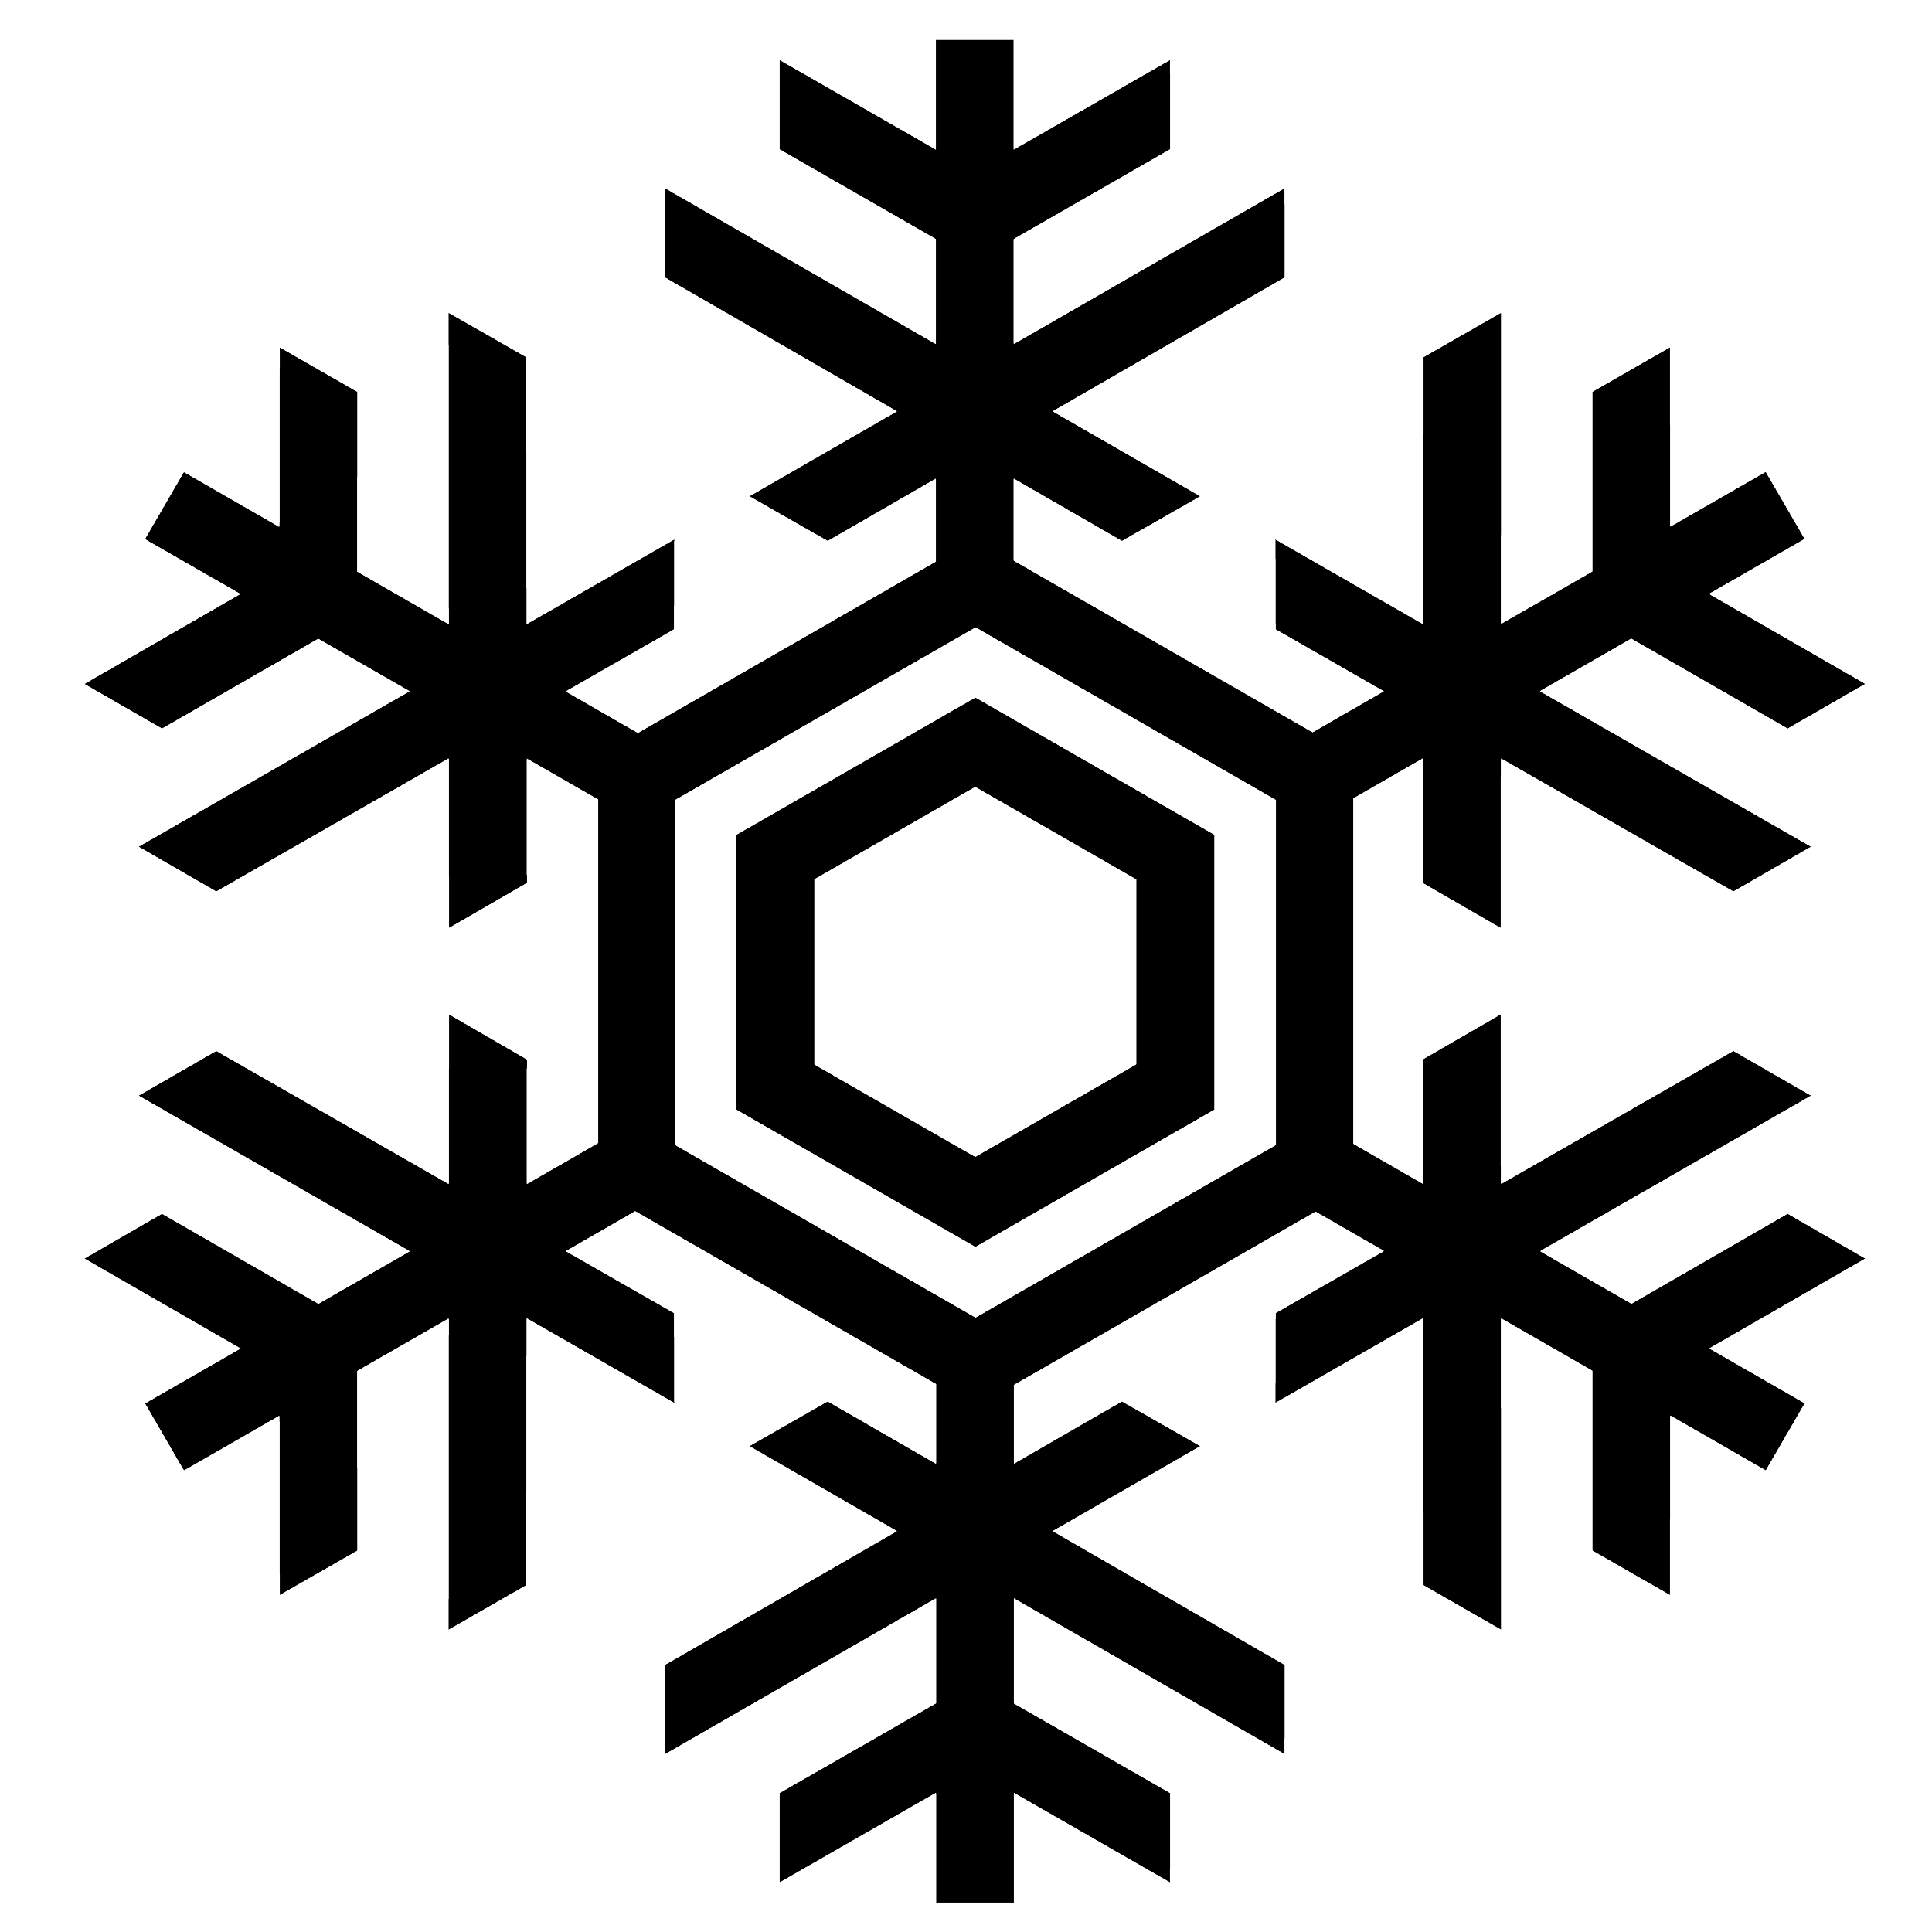 Snowflake clipart black and white png graphic transparent snowflake silhouette - Google Search | shapes - line | Pinterest ... graphic transparent